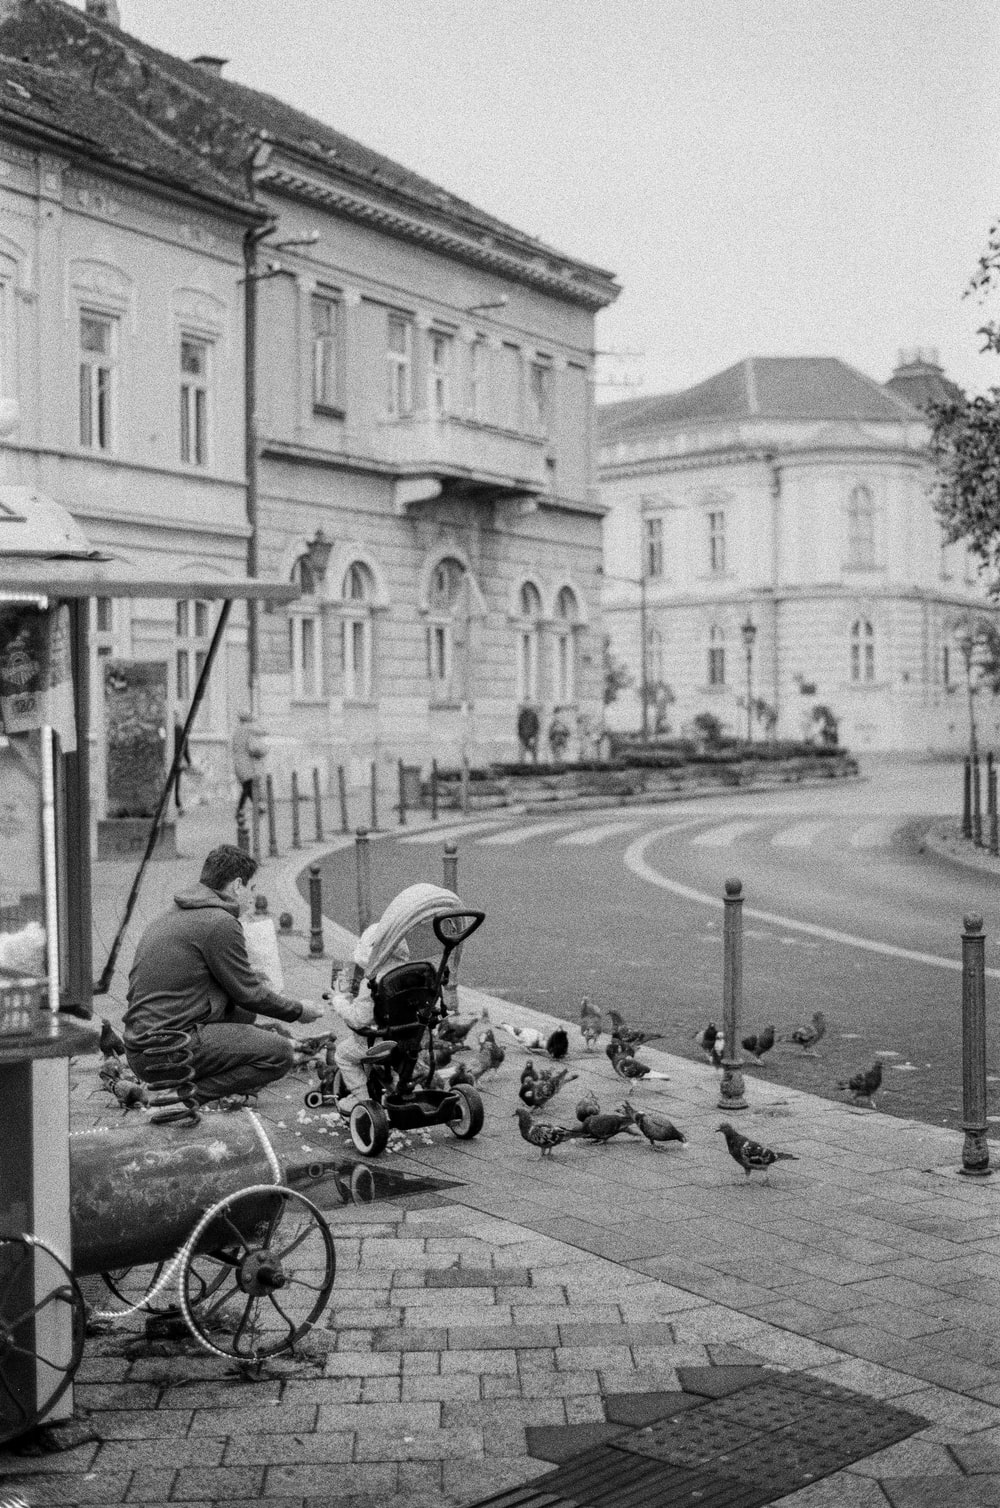 grayscale photo of man sitting on motorcycle in front of building